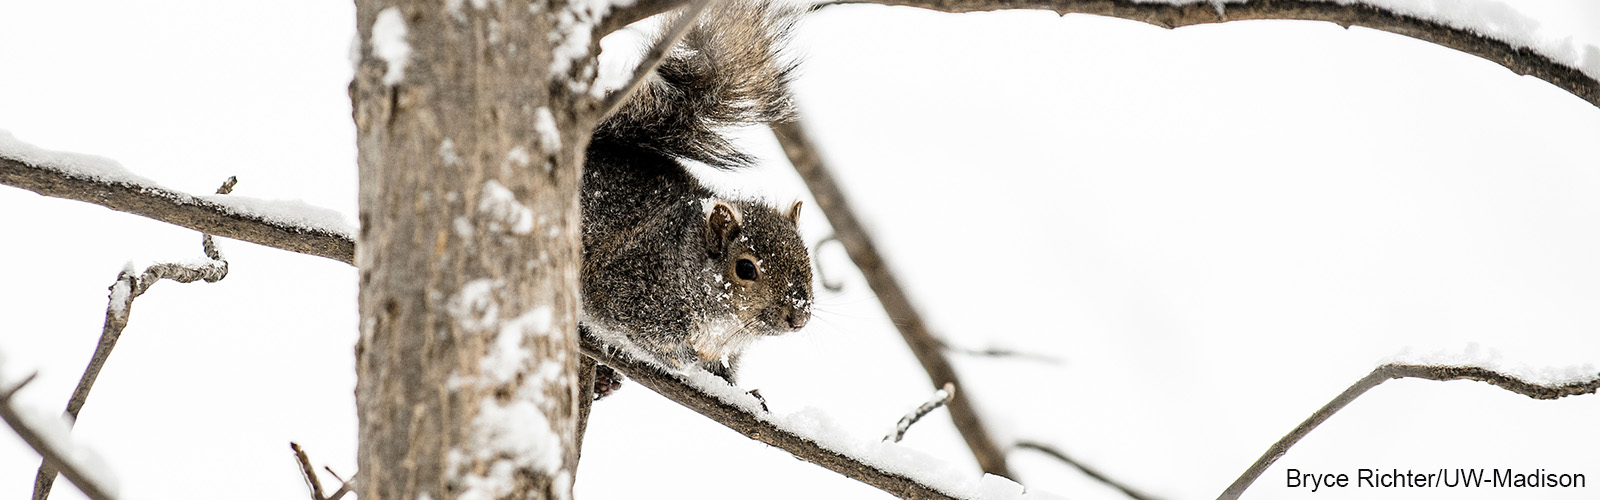 A squirrel sits on a snowy branch